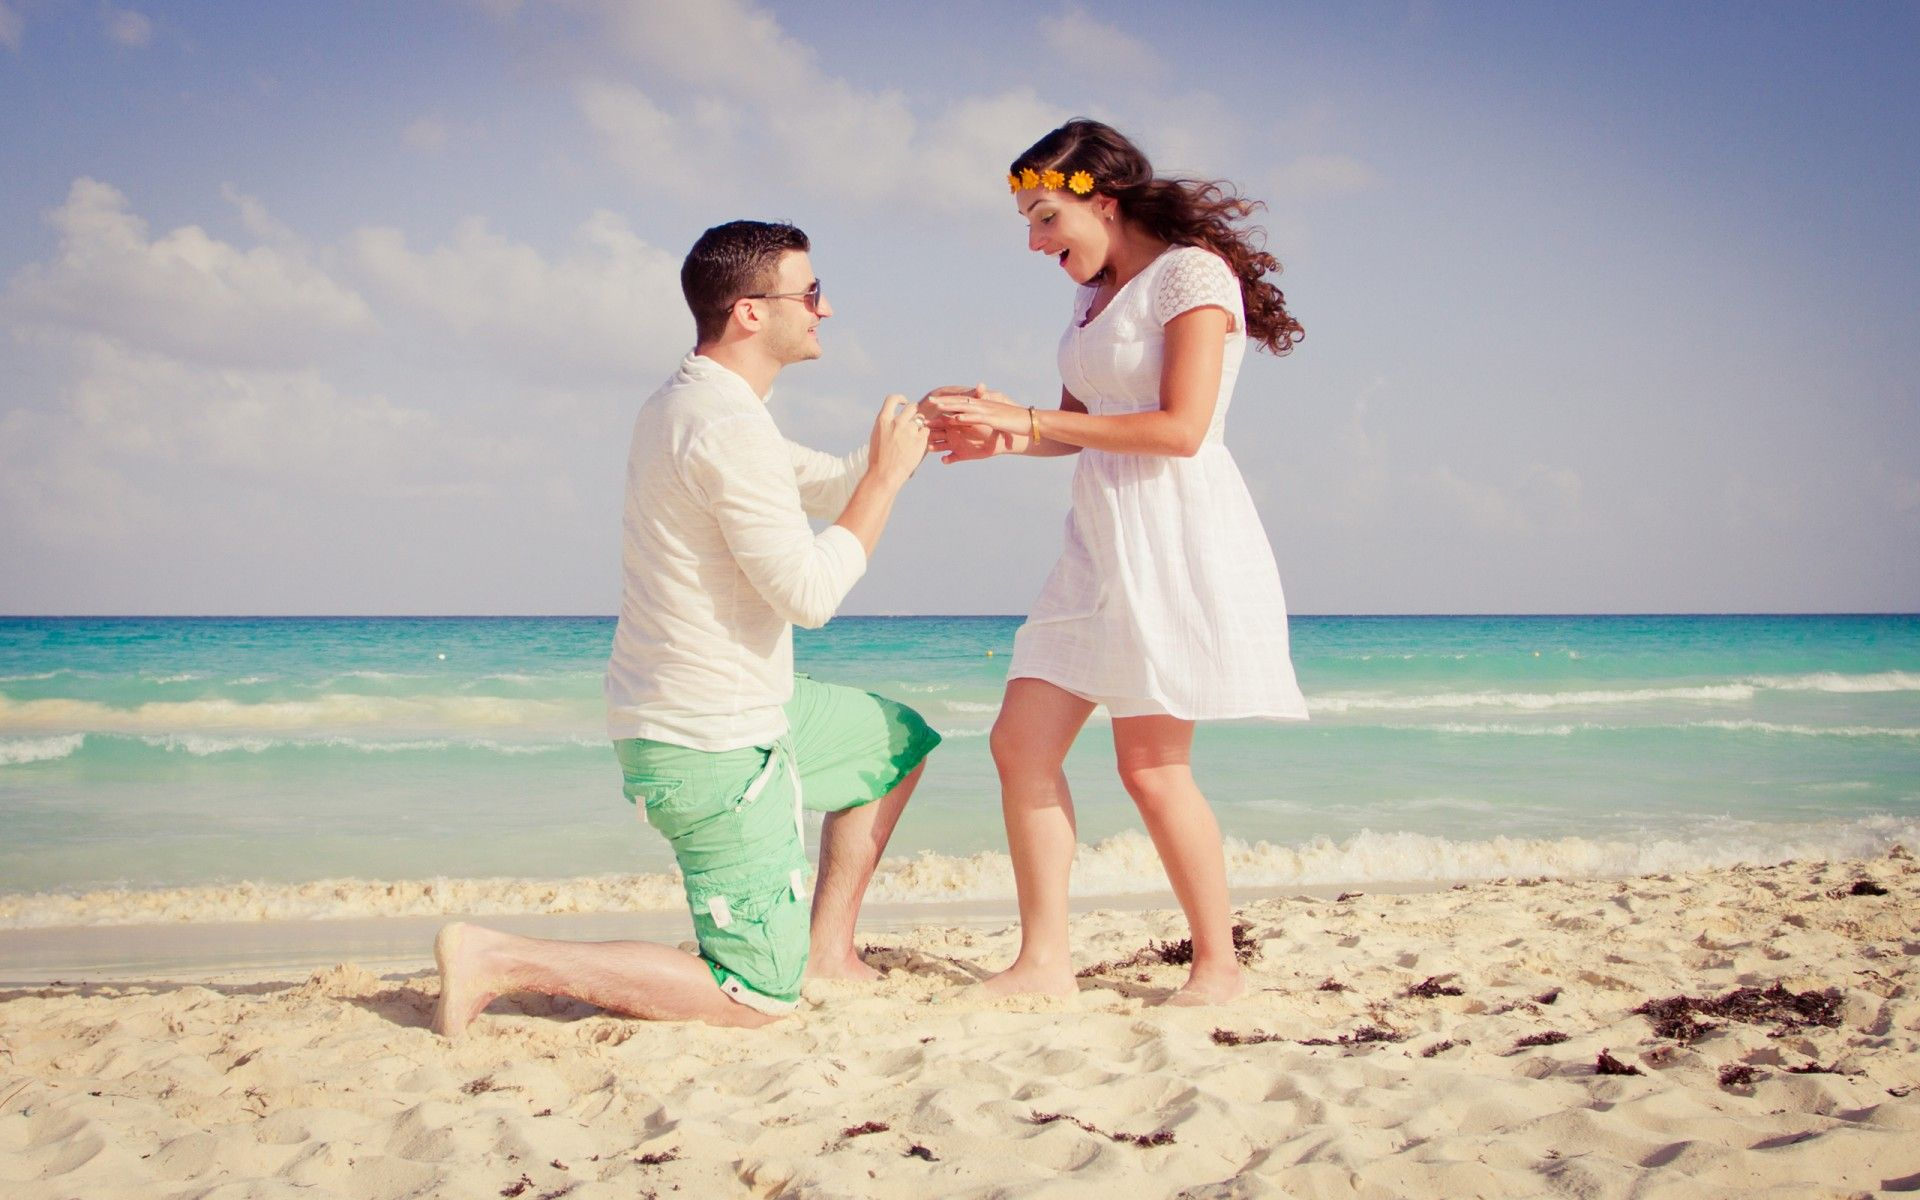 Best Propose Day Image – Quotes & Wishes for Valentine's Week